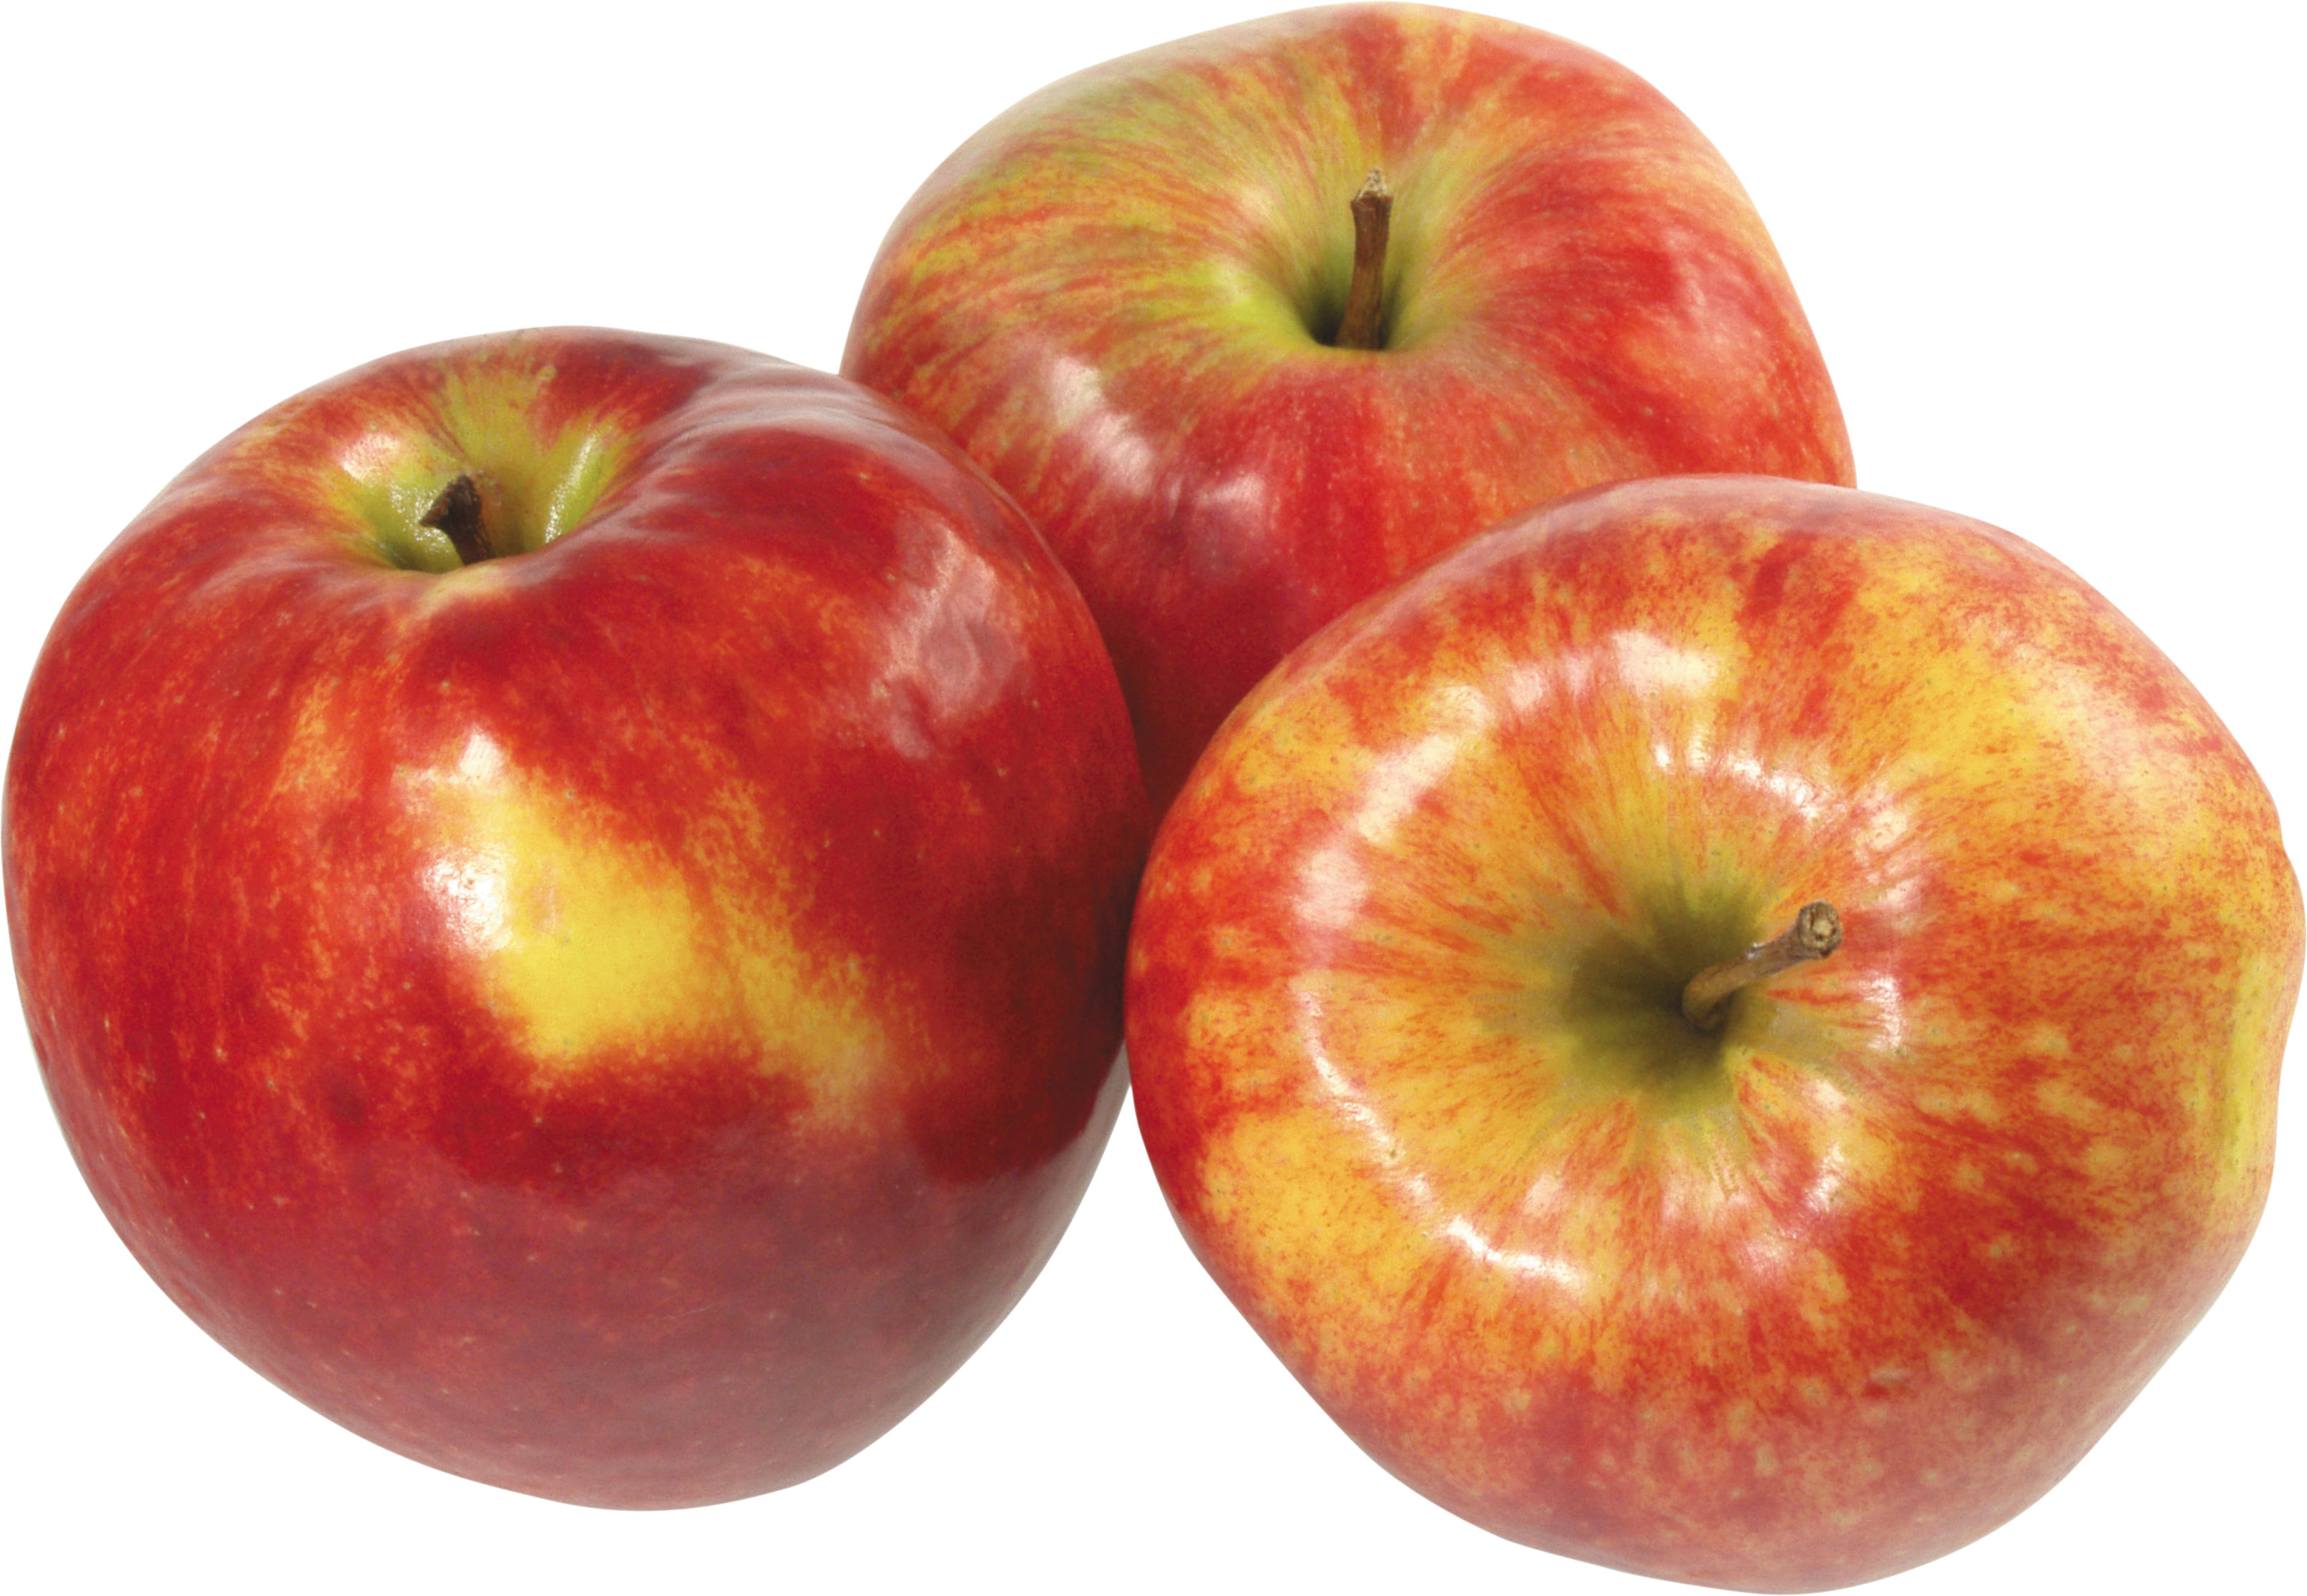 Apple png image. Images free download